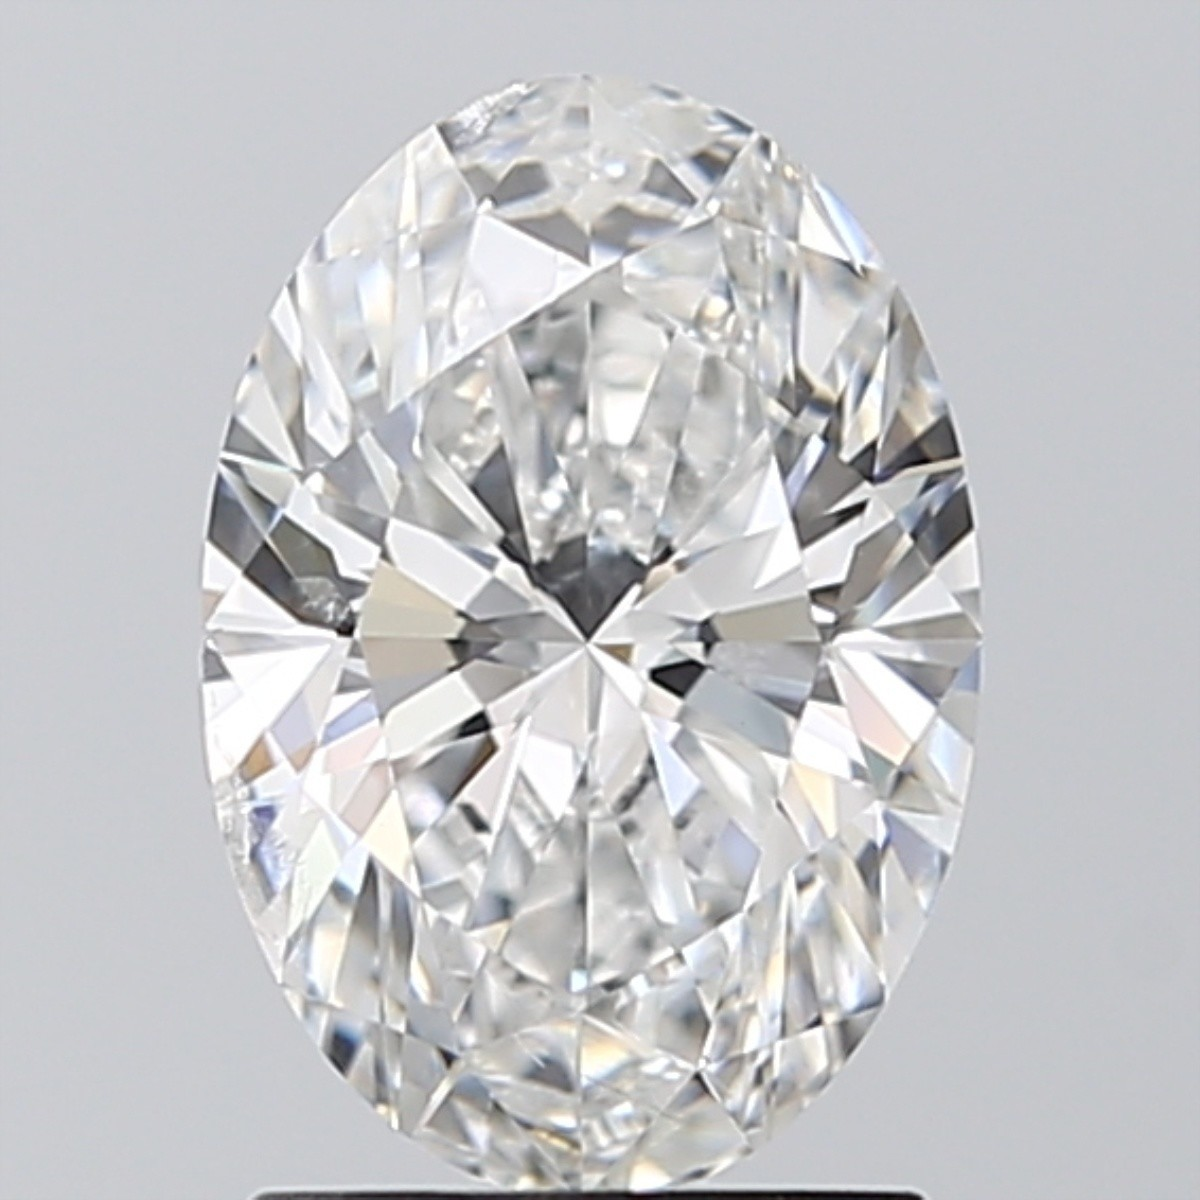 1.51 Carat Oval Diamond (E/SI2)